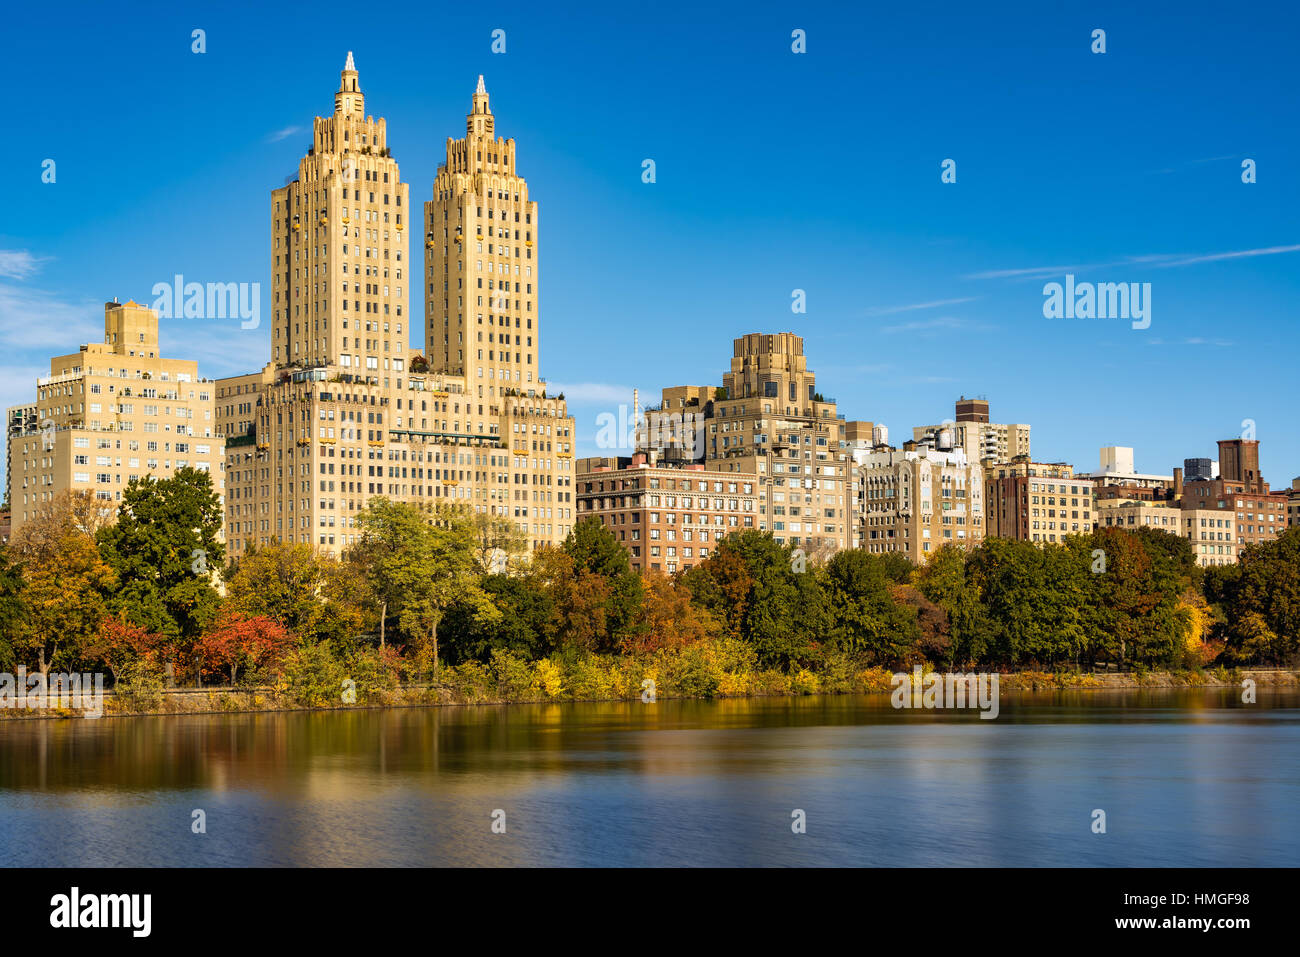 Les bâtiments de l'Upper West Side et Central Park en automne. Manhattan, New York City Photo Stock